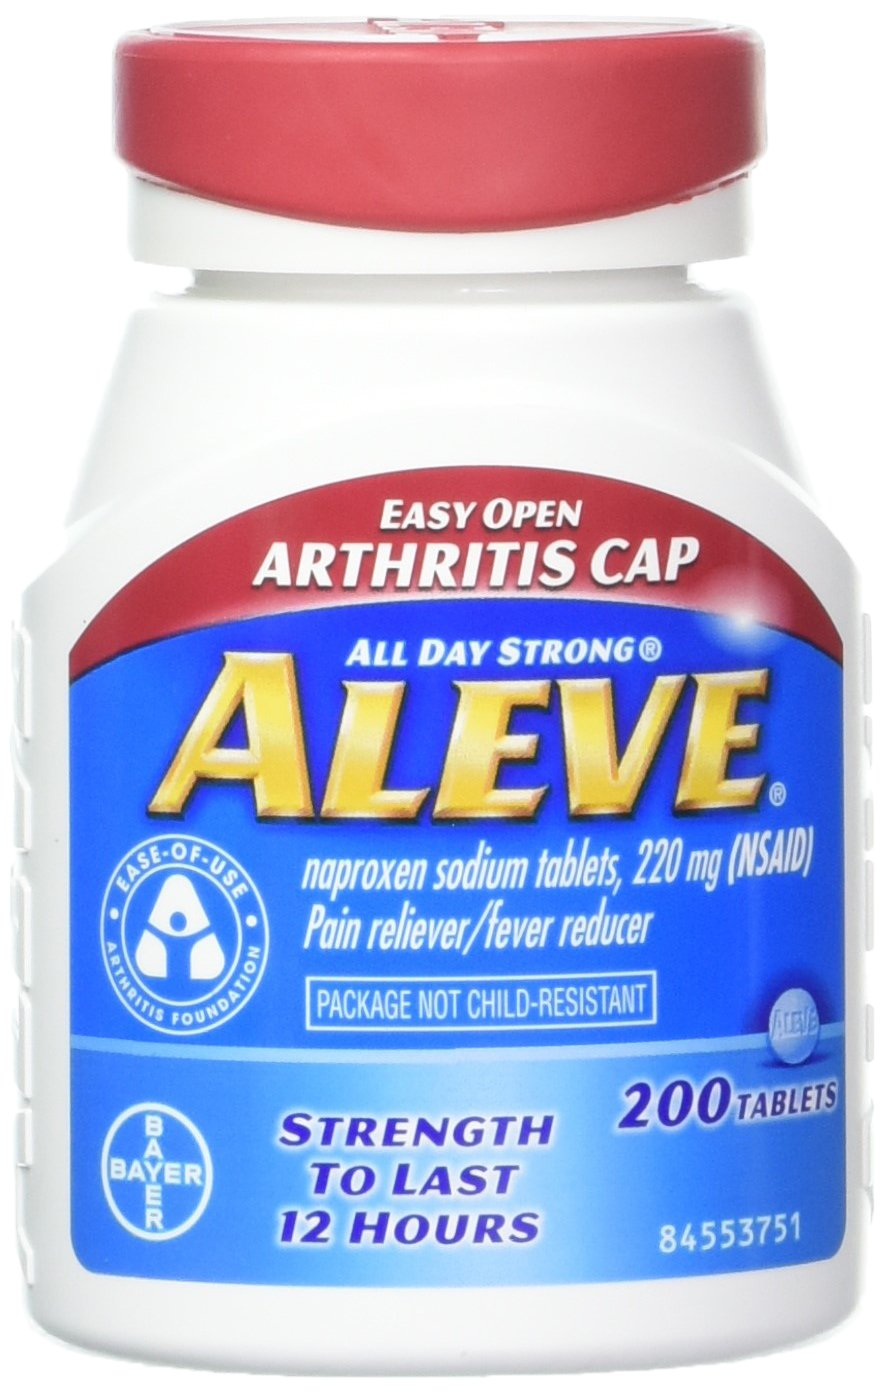 Aleve Tablets with Easy Open Arthritis Cap, Naproxen Sodium, 220mg (NSAID) Pain Reliever/Fever Reducer, 200 Count (Pack of 2) by Aleve